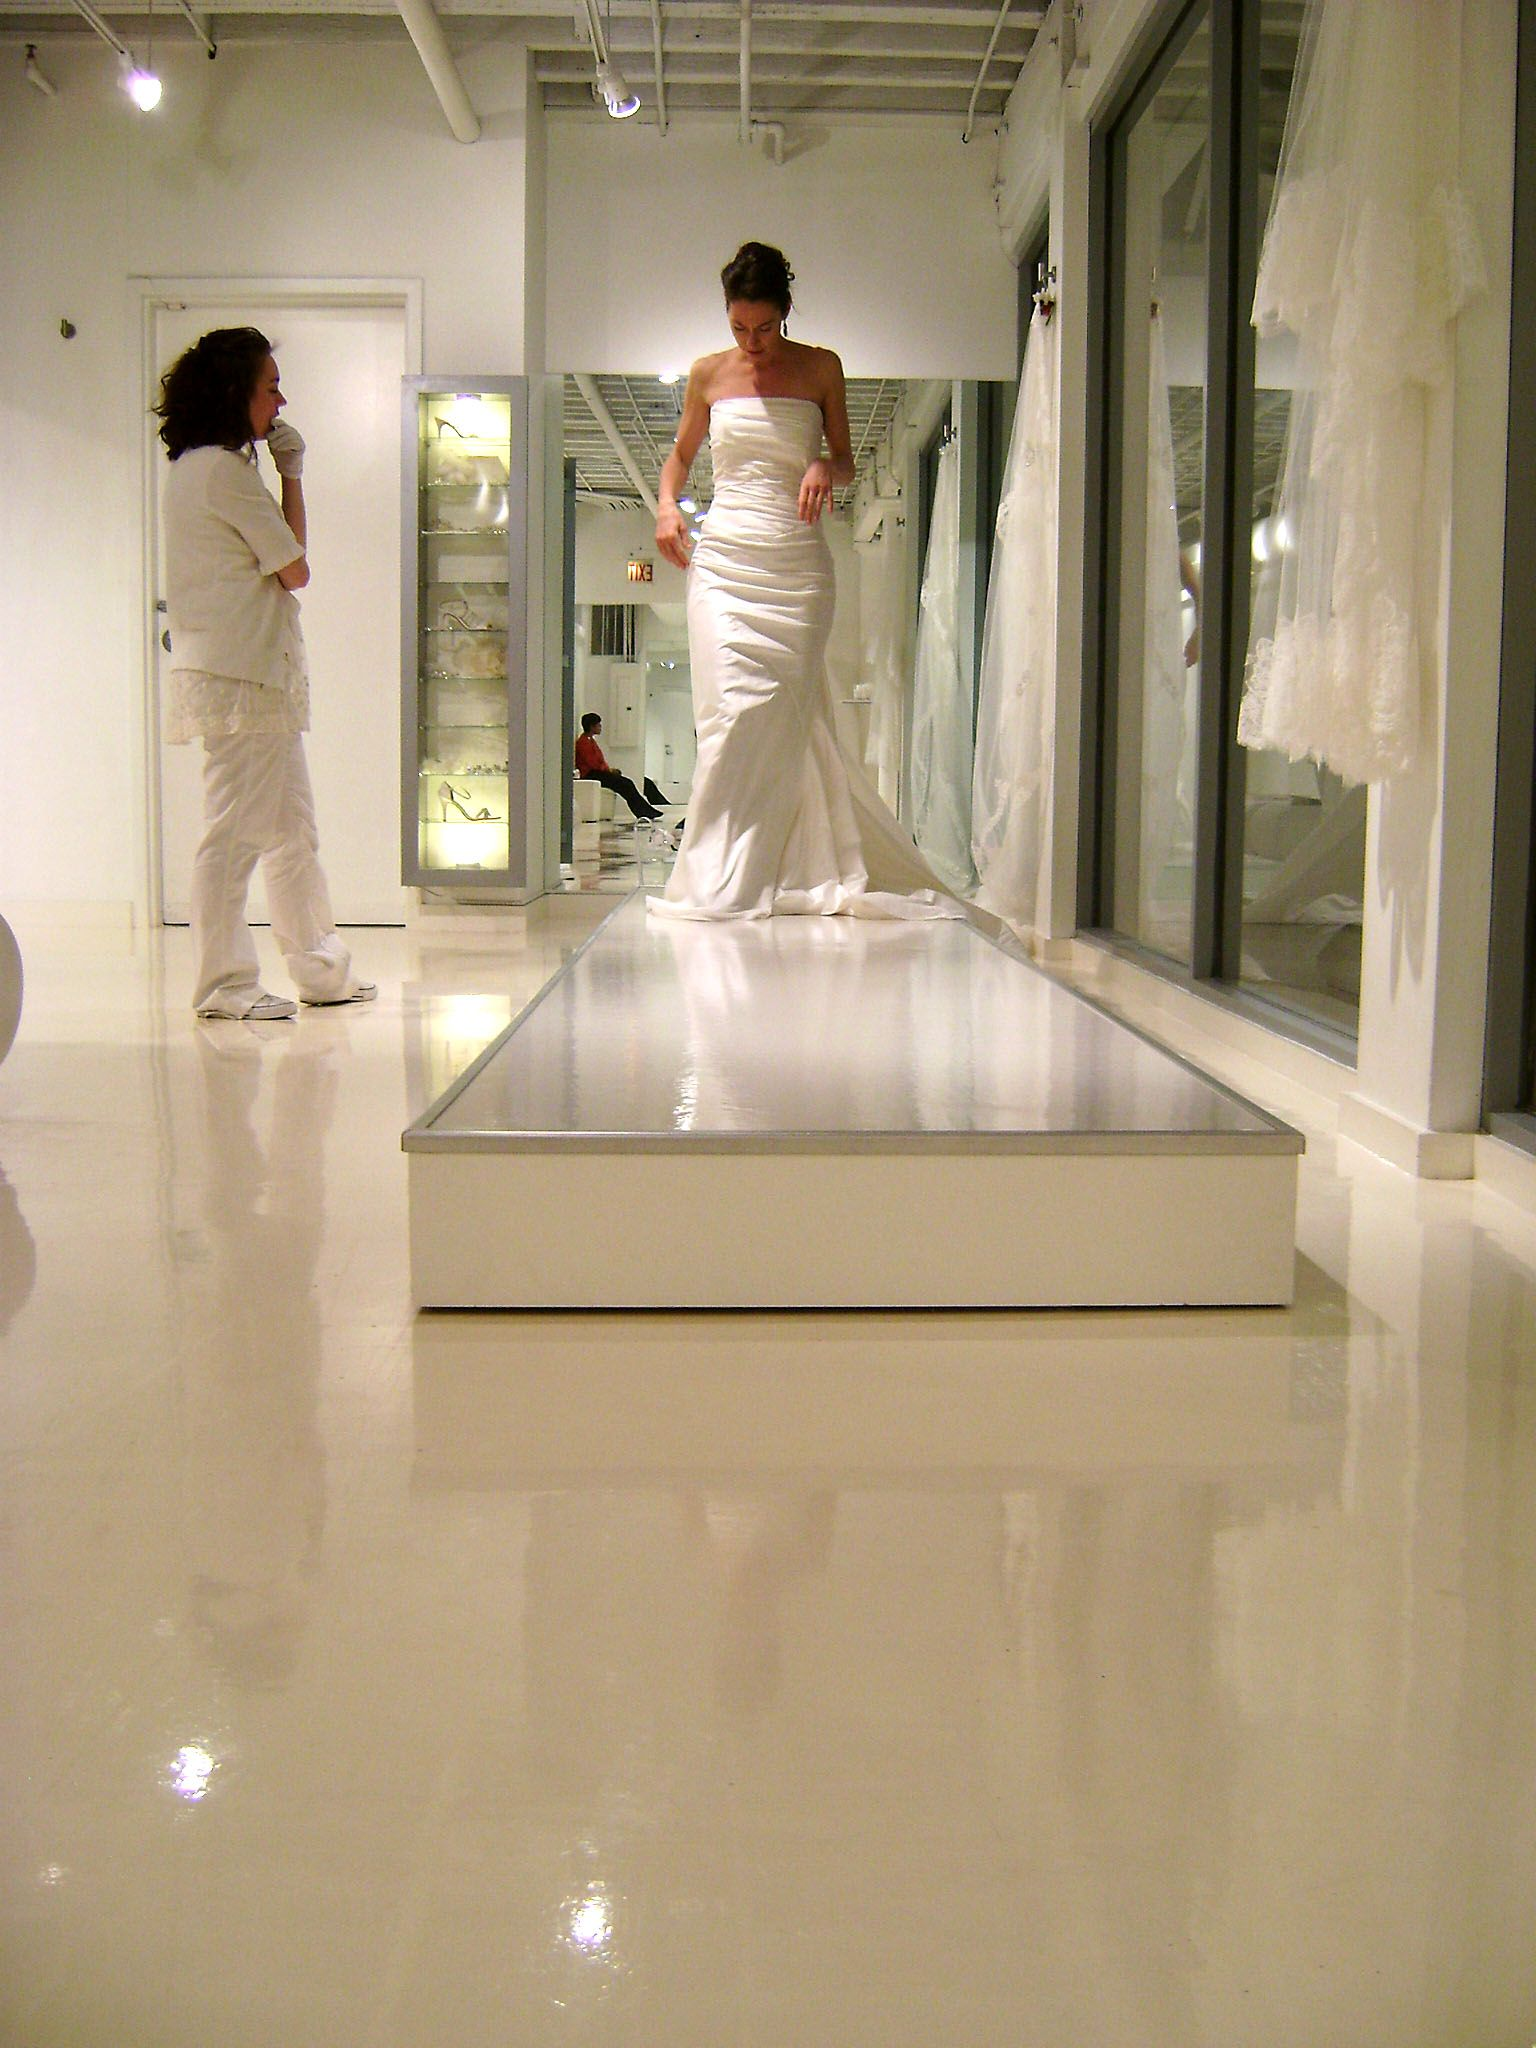 17 Best images about Bridal Stores on Pinterest | Runway, Bridal ...